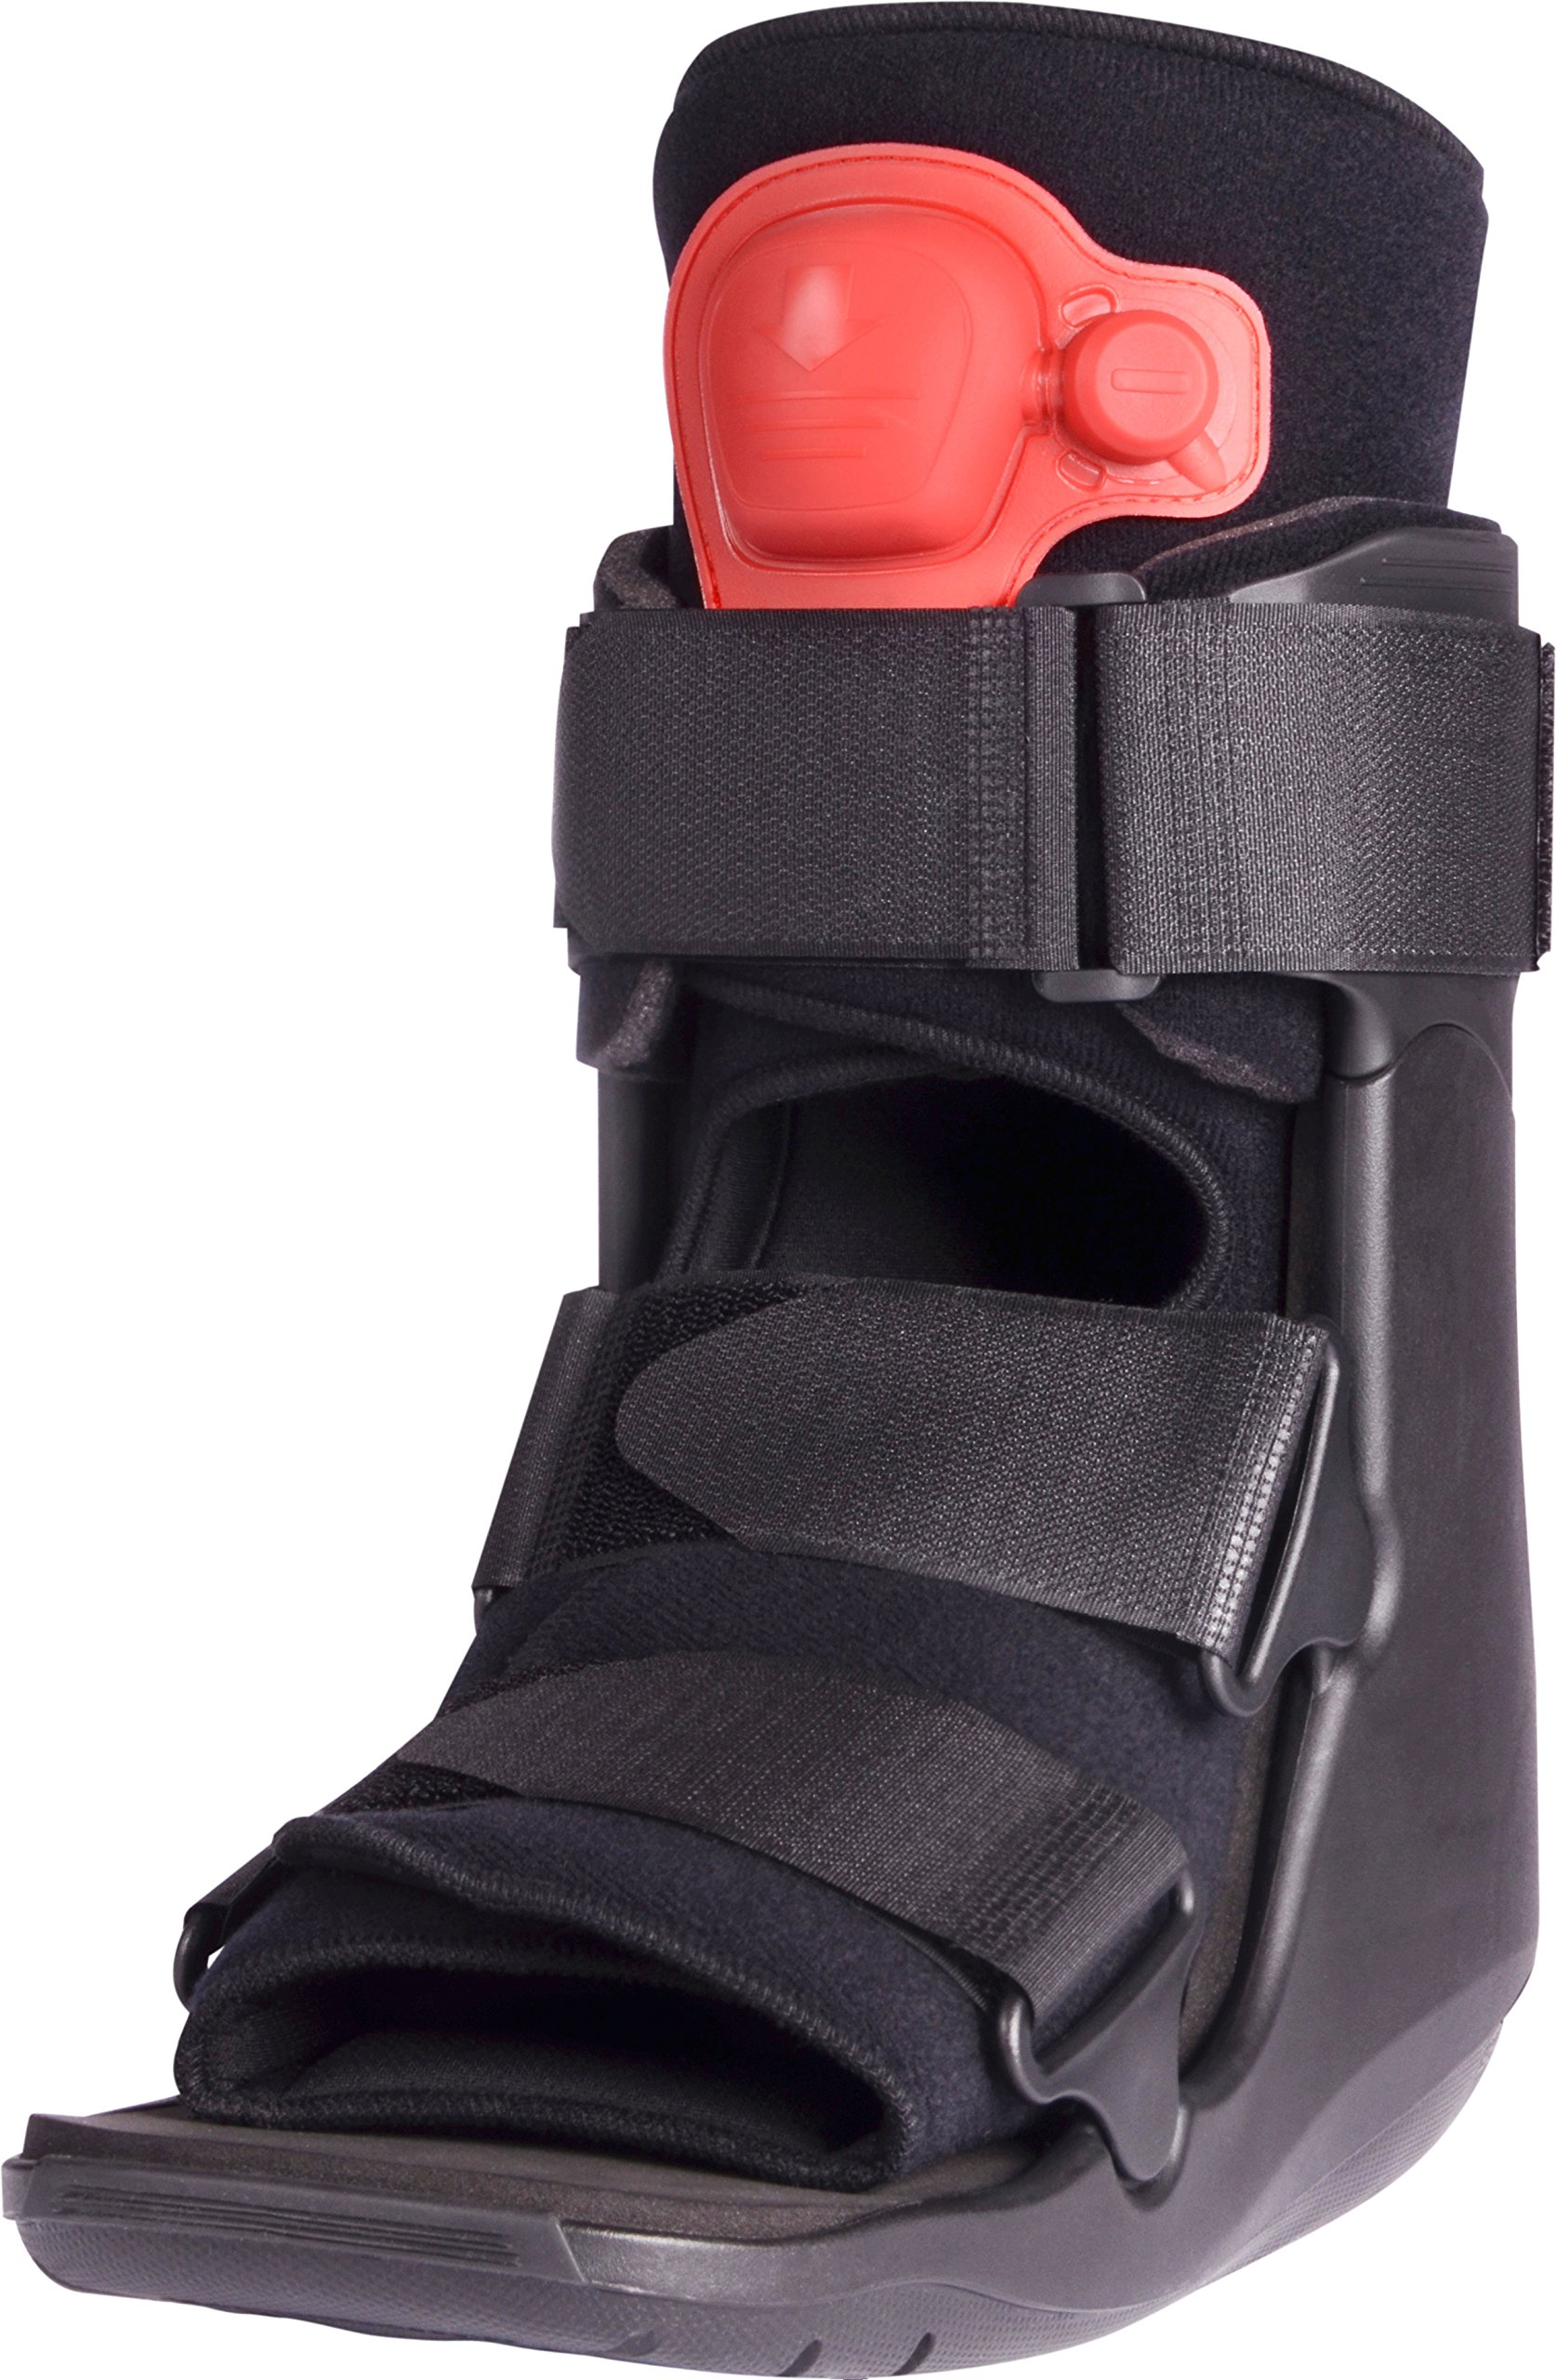 ProCare XcelTrax Air Ankle Walker Brace/Walking Boot, Small by ProCare